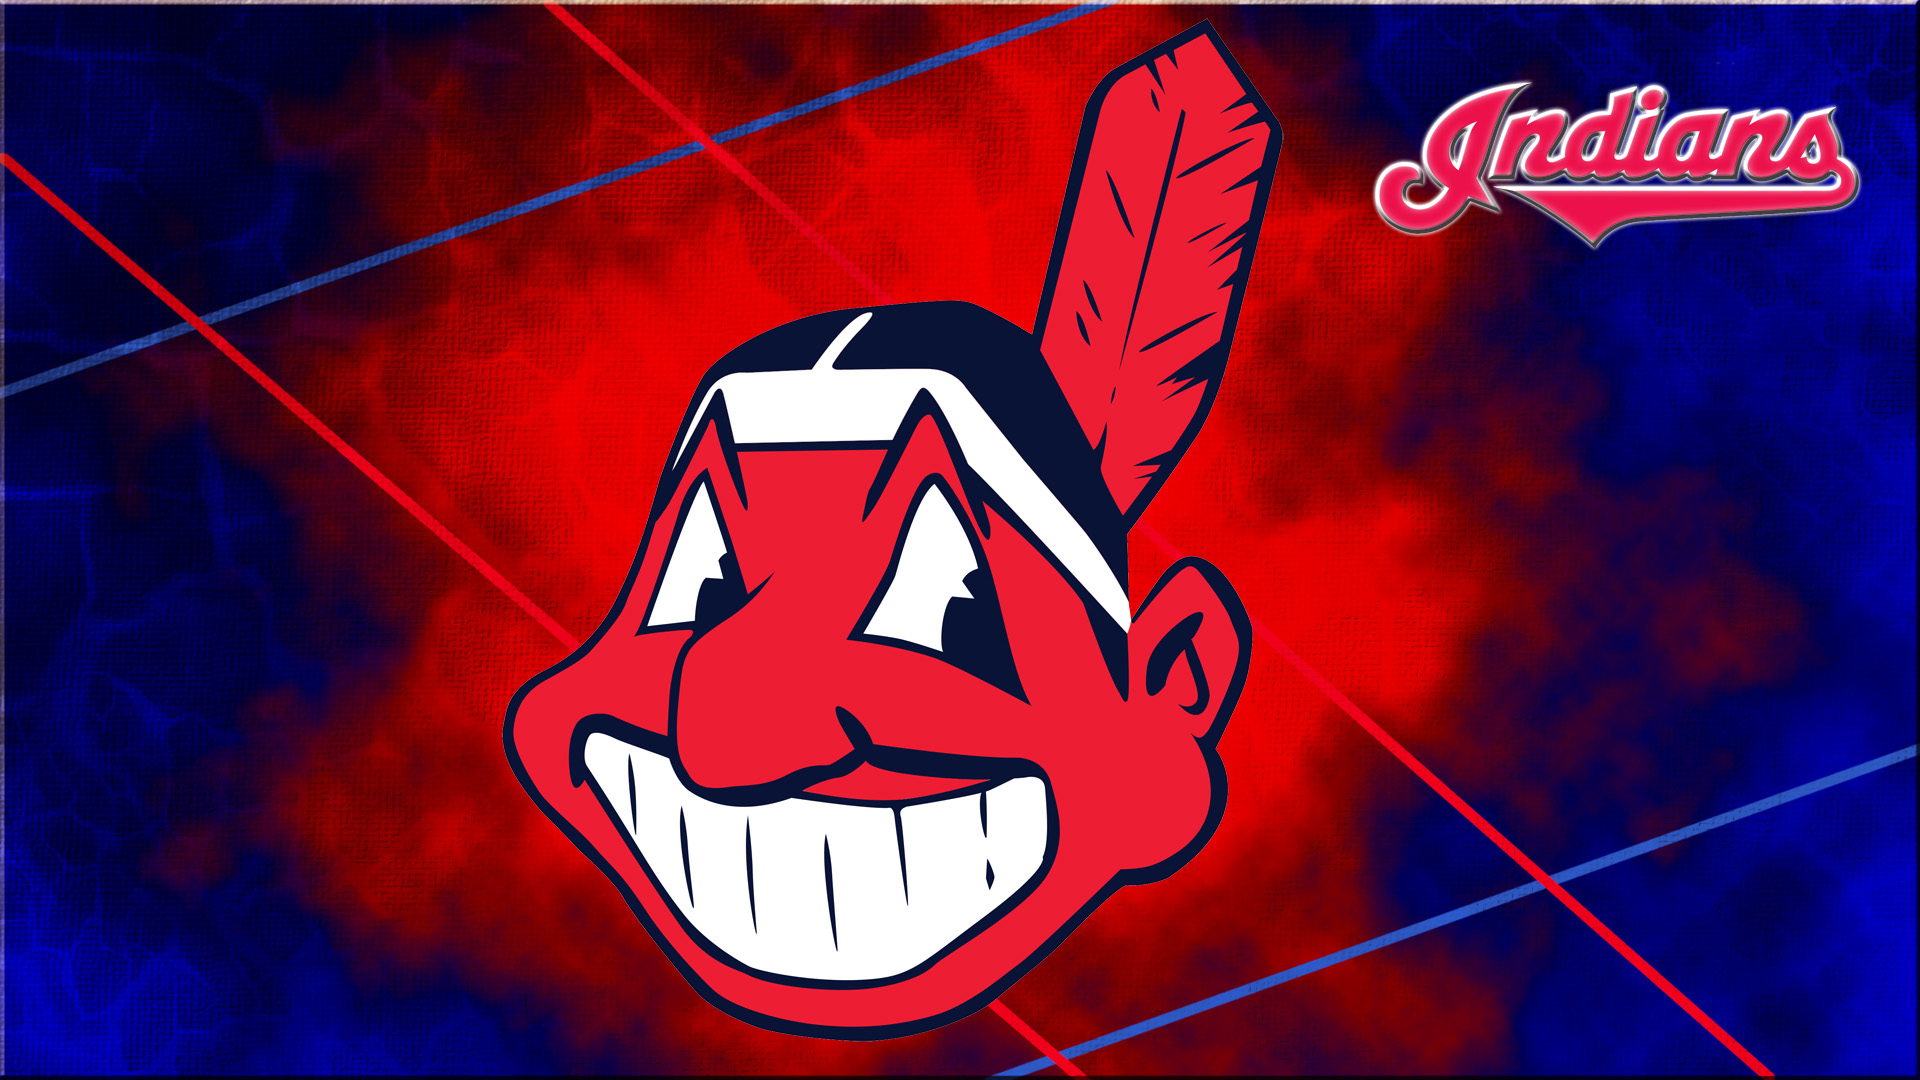 Cleveland indians wallpaper screensaver wallpapersafari - Cleveland indians pictures ...